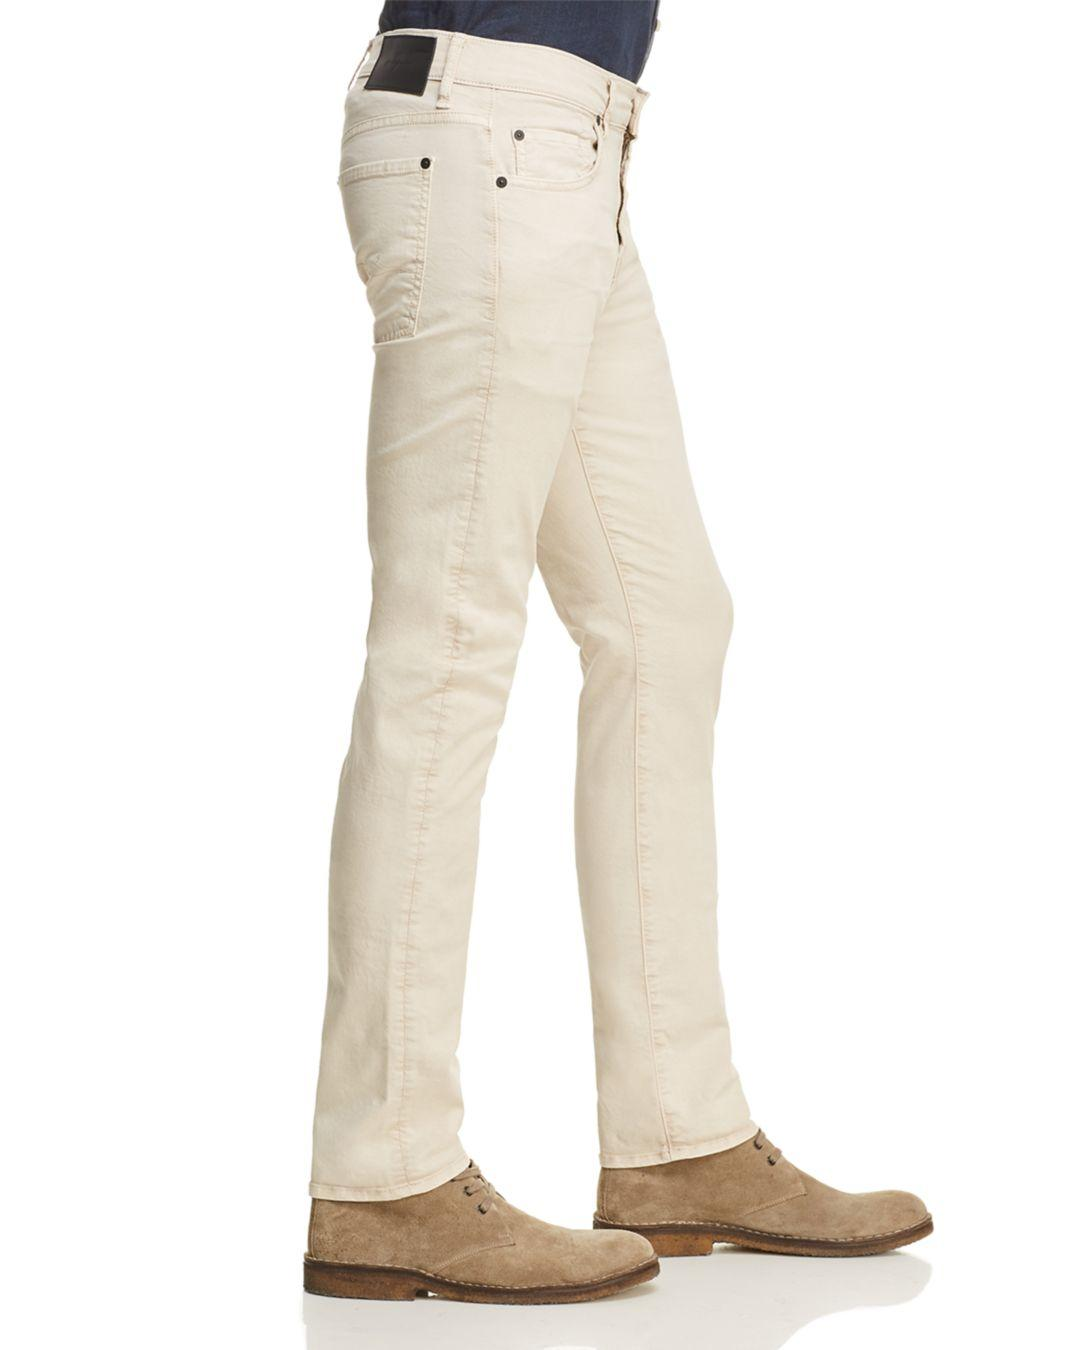 7 For All Mankind Denim Adrien Tapered Fit Jeans In White Onyx for Men